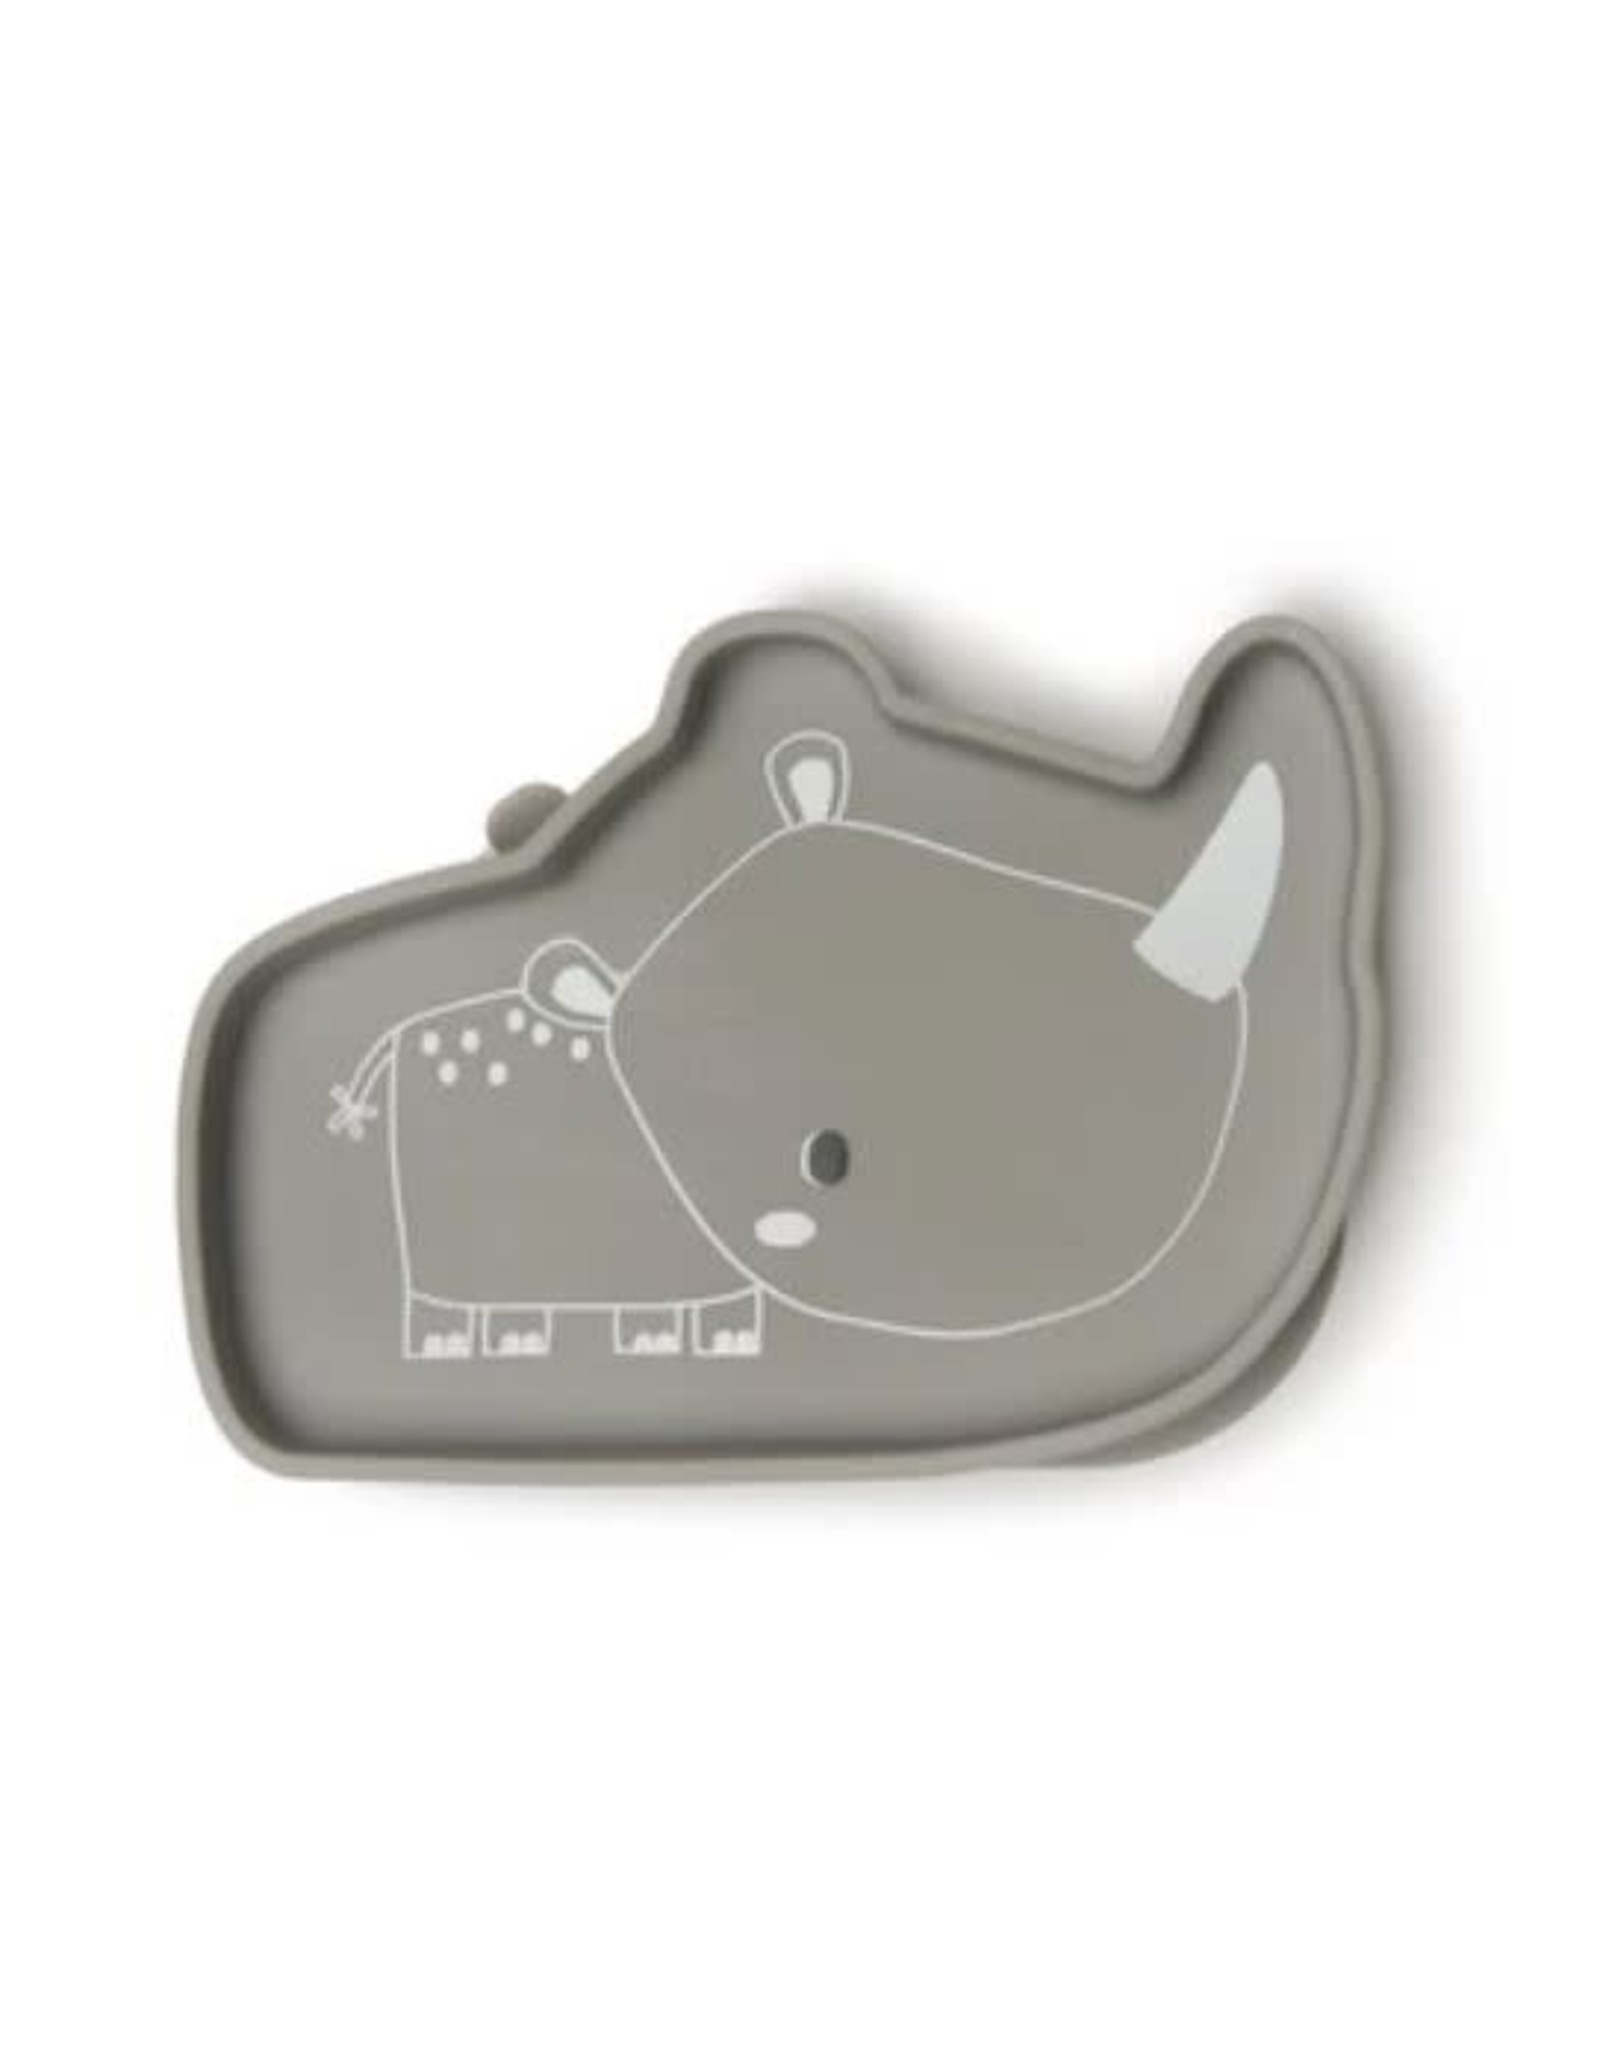 Loulou Lollipop Born to be Wild Silicone Snack Plate - Rhino